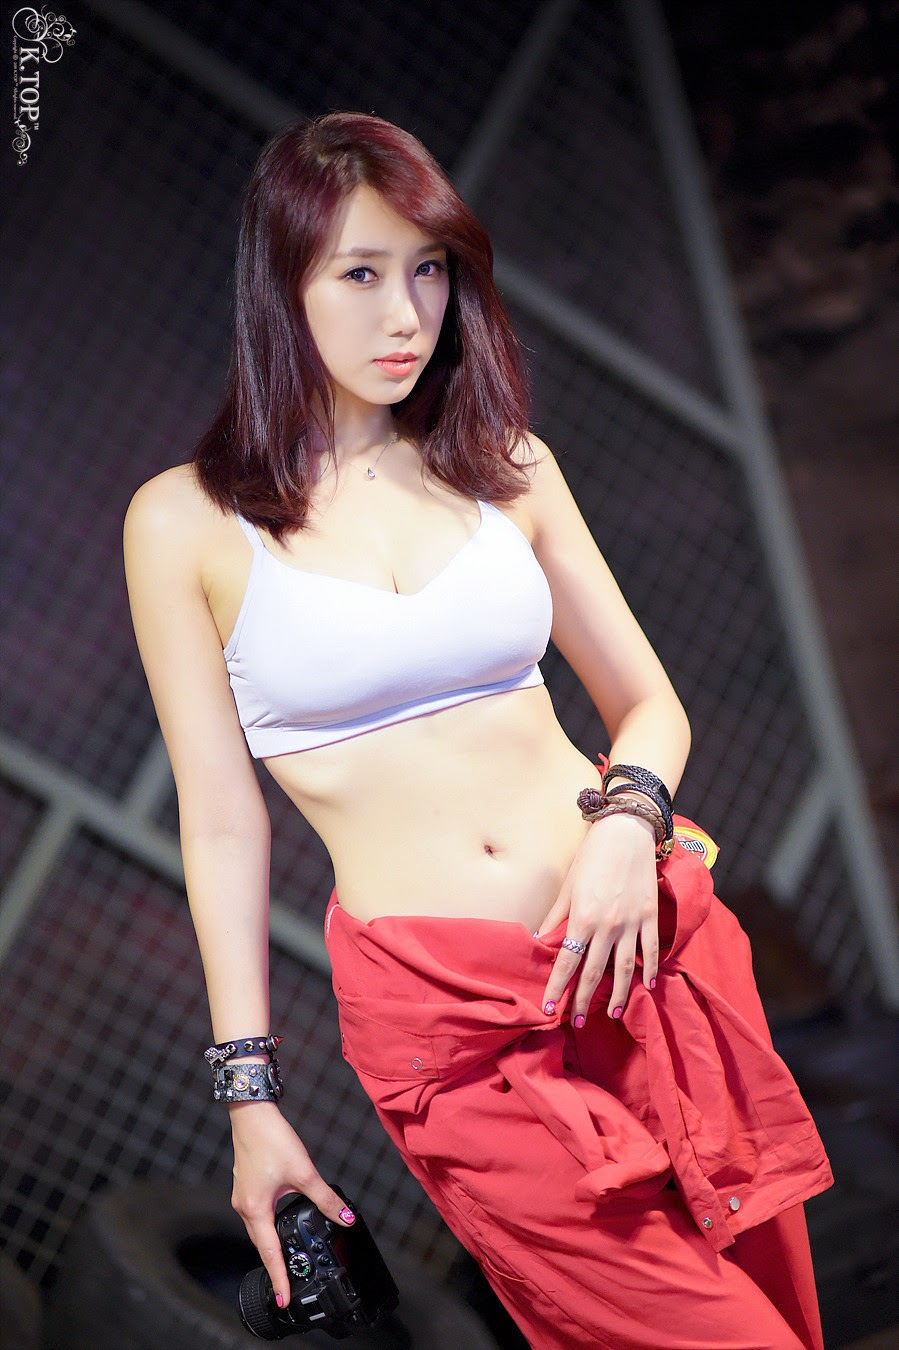 2 Lee Sung Hwa - P&I 2014 - very cute asian girl-girlcute4u.blogspot.com